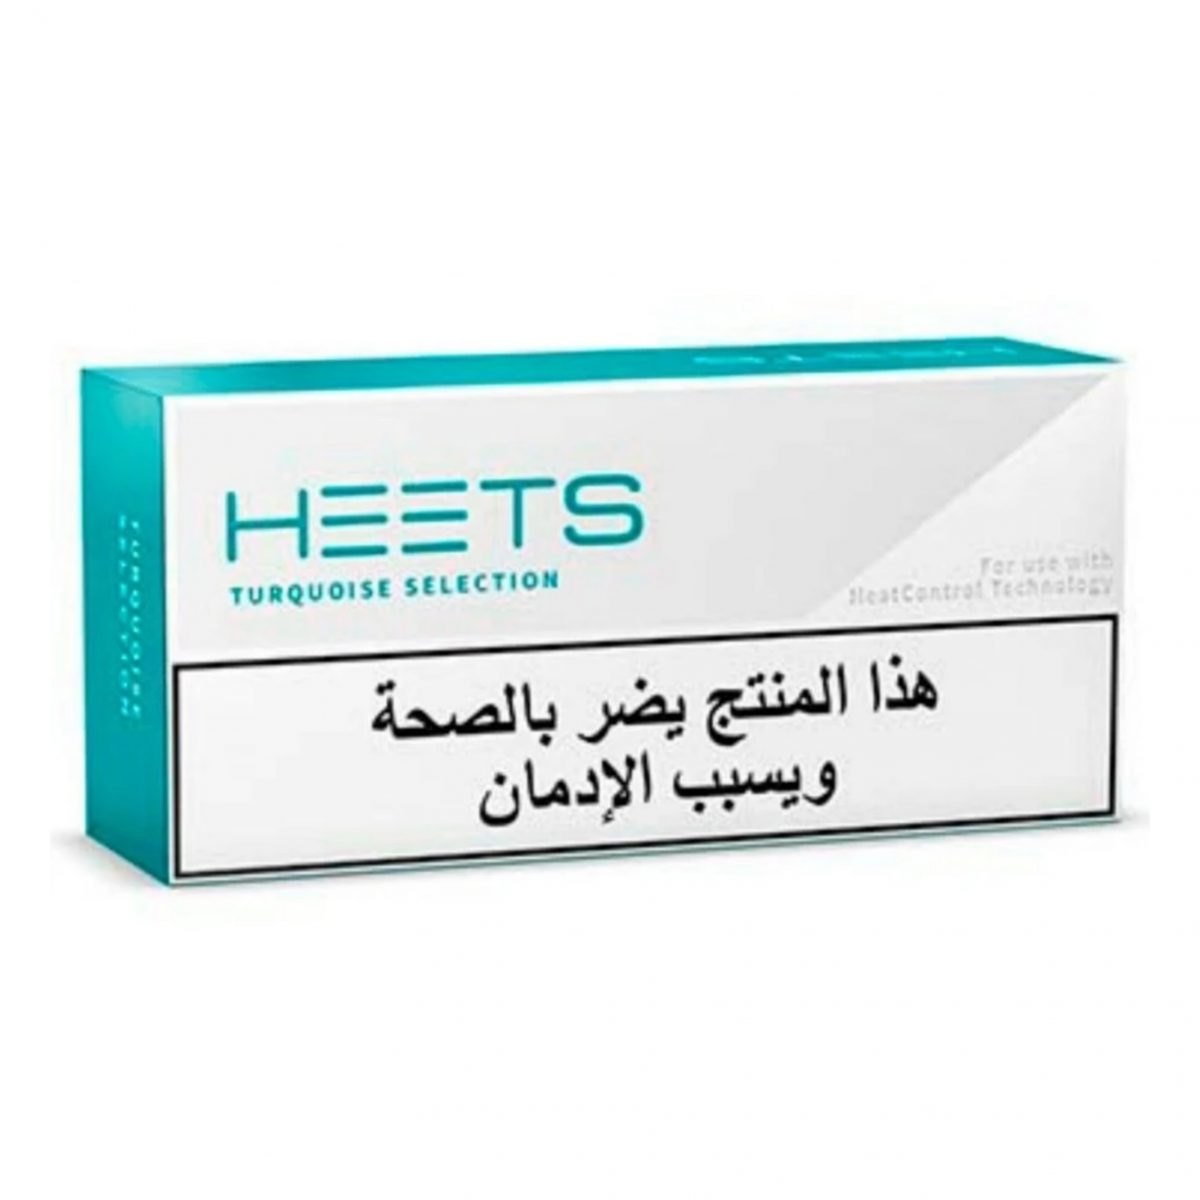 Heets Turquoise Selection Arabic from Lebanon